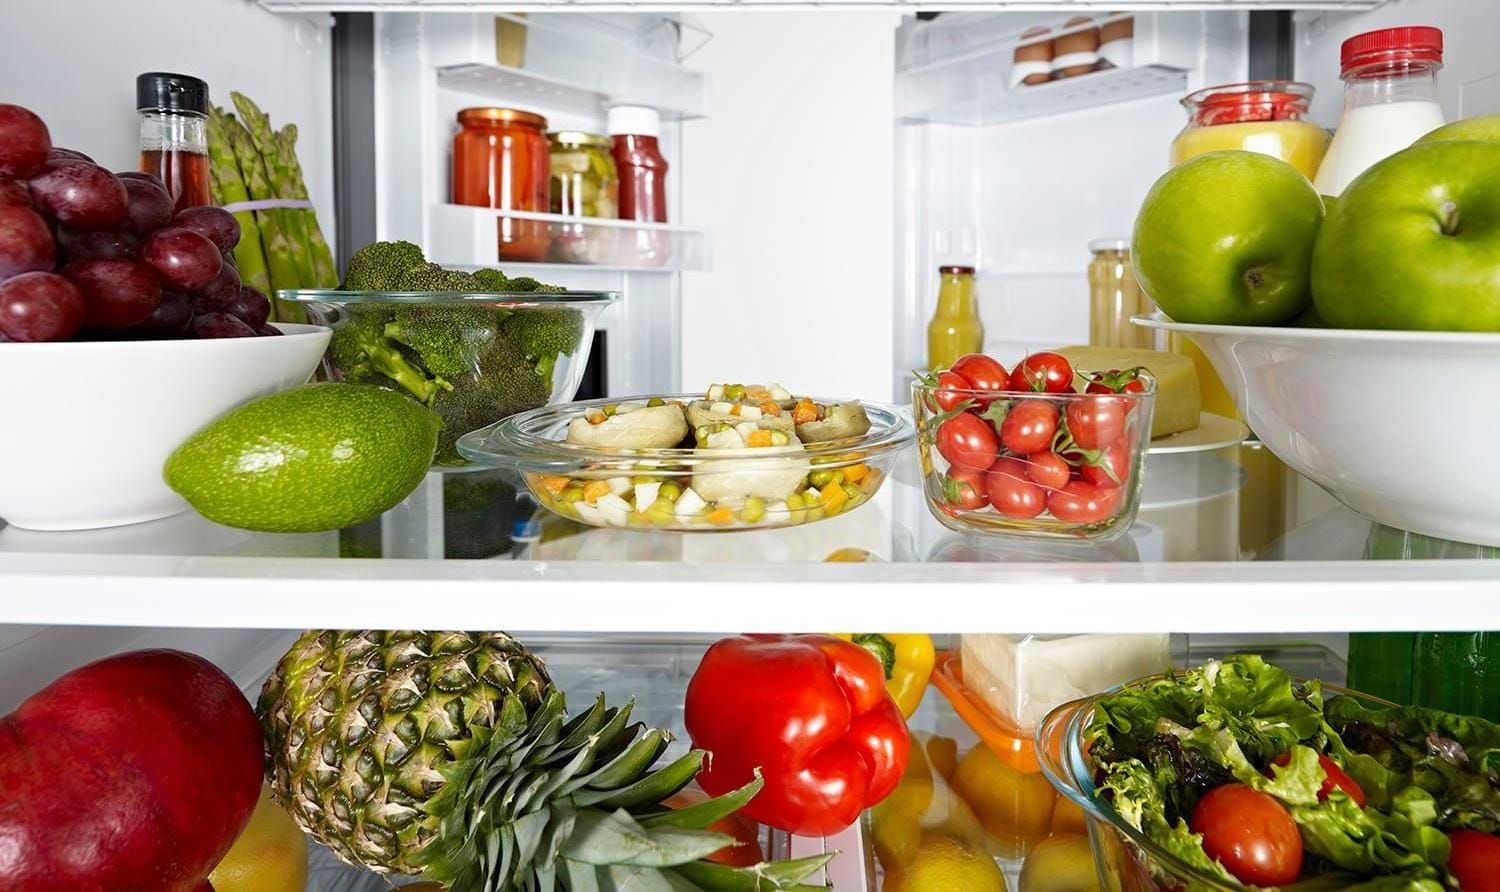 Food in open refrigerator